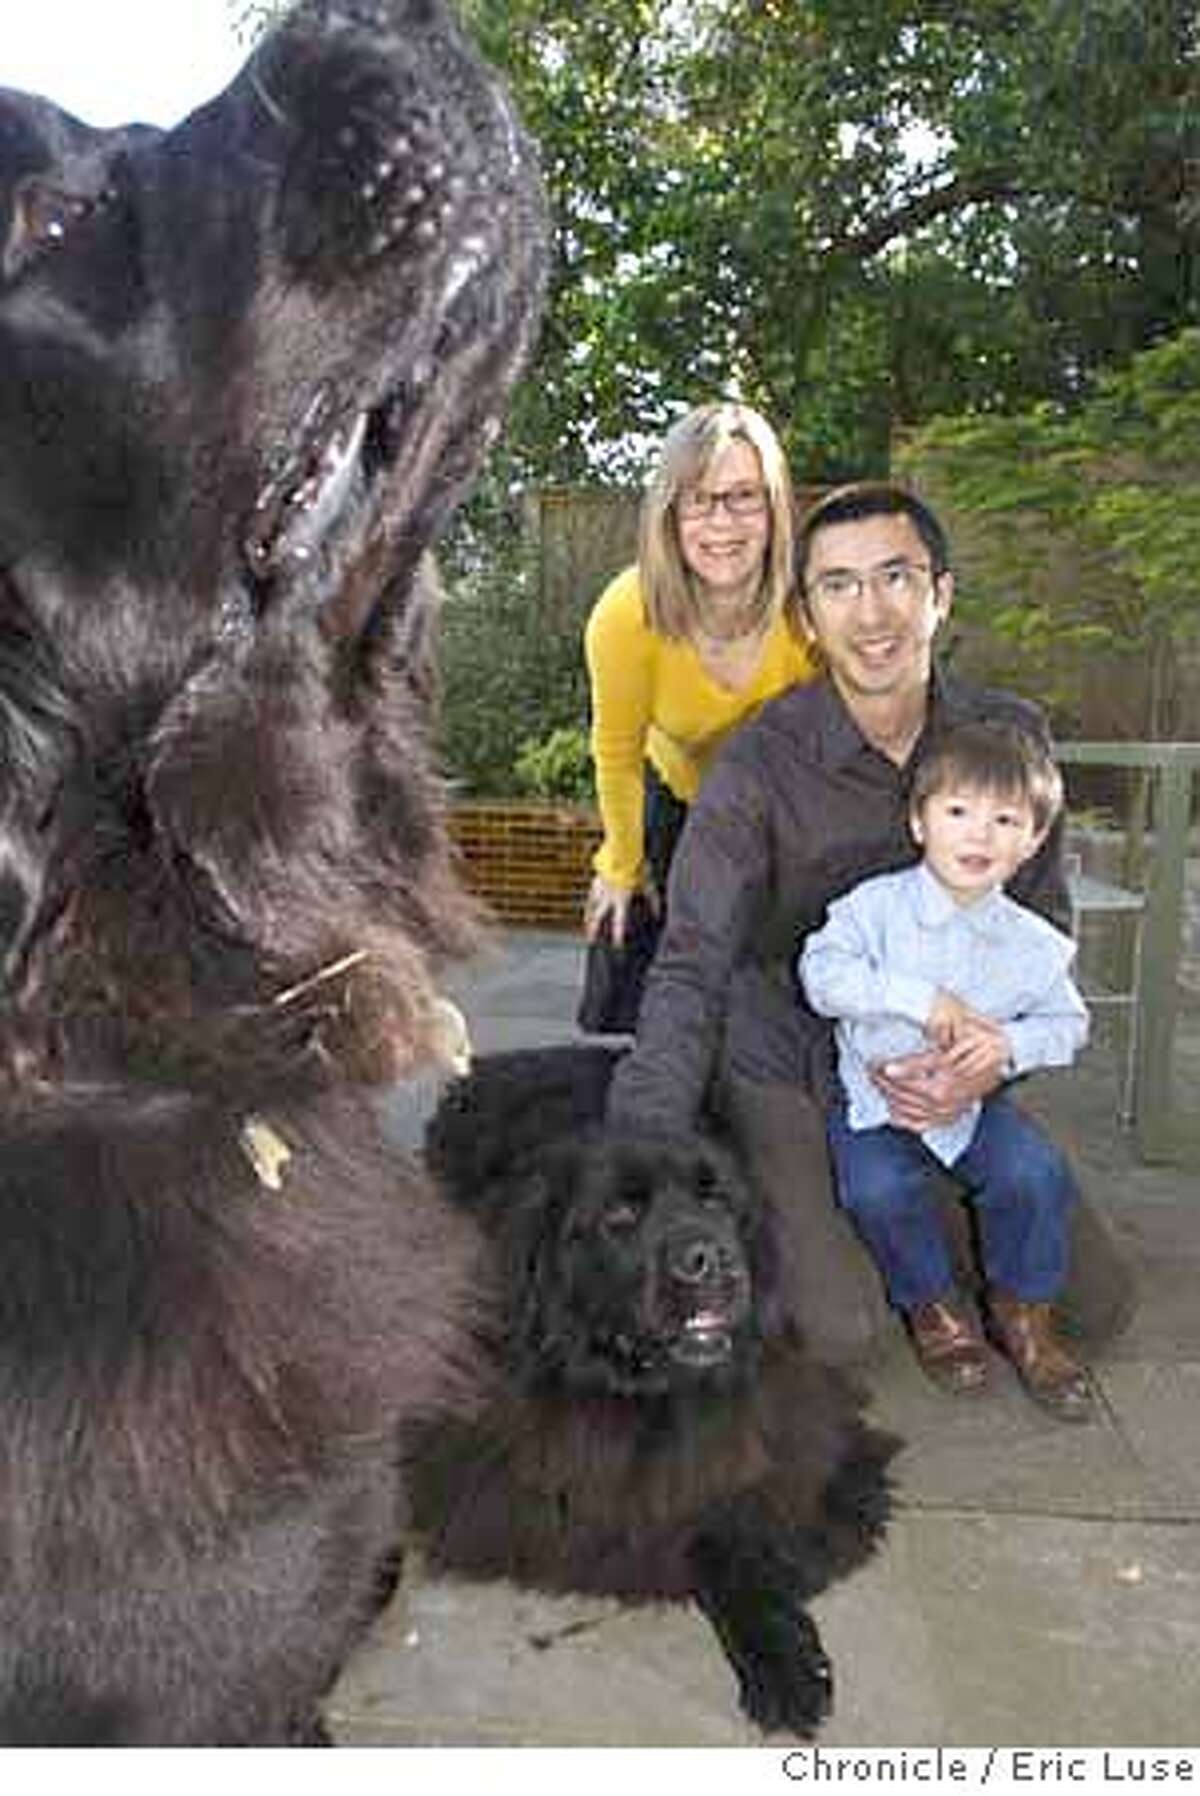 ###Live Caption:Heath Ceramic owners Catherine Bailey and Robin Petravic and their son Jasper,3, with family pet Carlo and Olive (left) sniffin at home in Sausalito photographed on Wednesday, April 16, 2008. Photo by Eric Luse / San Francisco Chronicle###Caption History:Heath Ceramic owners Catherine Bailey and Robin Petravic's and their son Jasper,3, with family pet Carlo and Olive (left) sniffin at home in Sausalito photographed on Wednesday, April 16, 2008. Photo by Eric Luse / San Francisco Chronicle###Notes:Name cq by source###Special Instructions:MANDATORY CREDIT FOR PHOTOG AND SAN FRANCISCO CHRONICLE/NO SALES-MAGS OUT